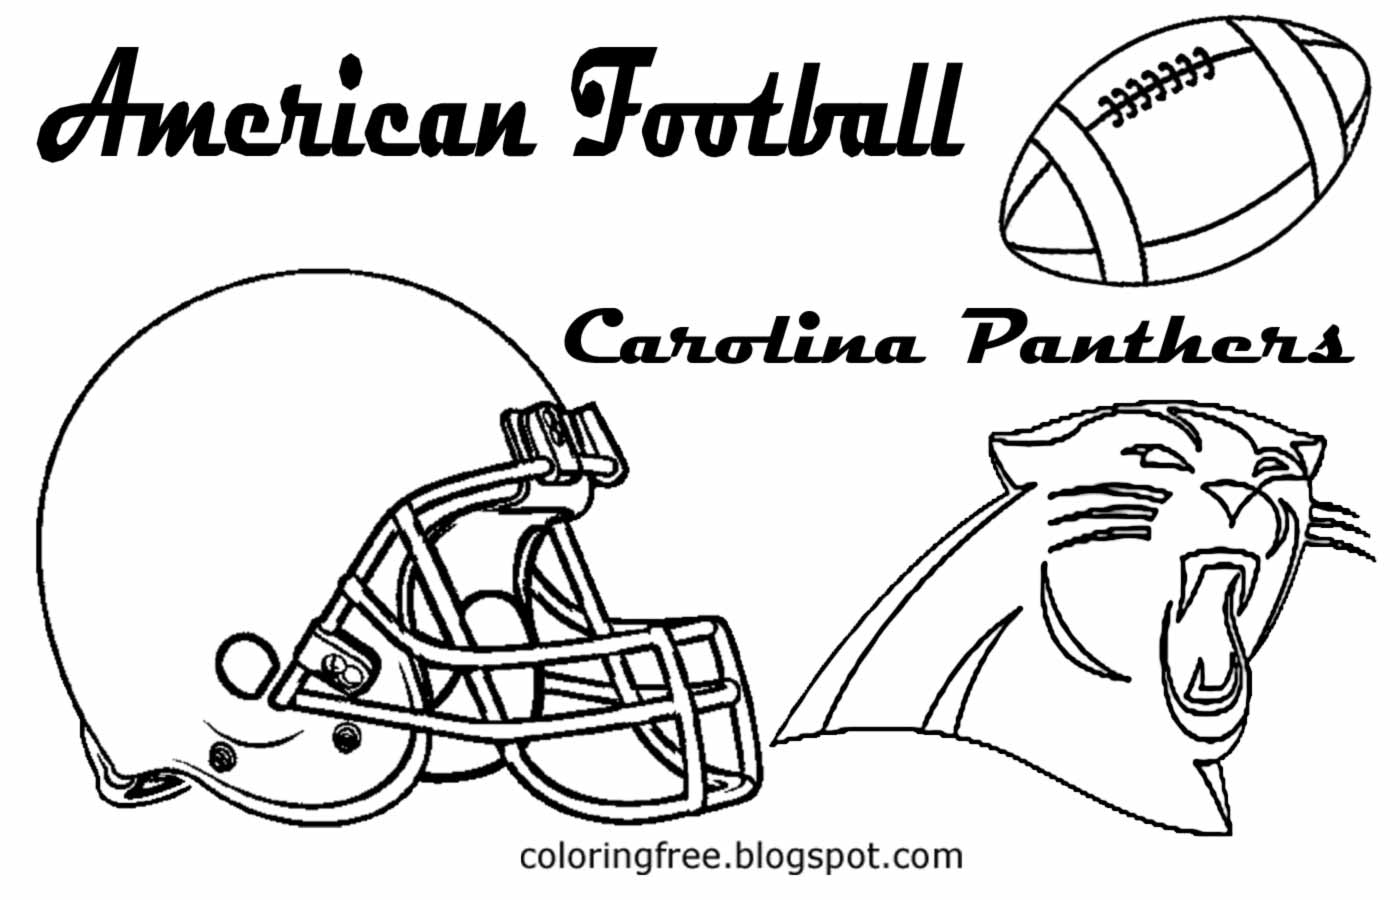 Free coloring pages printable pictures to color kids for Panthers football coloring pages